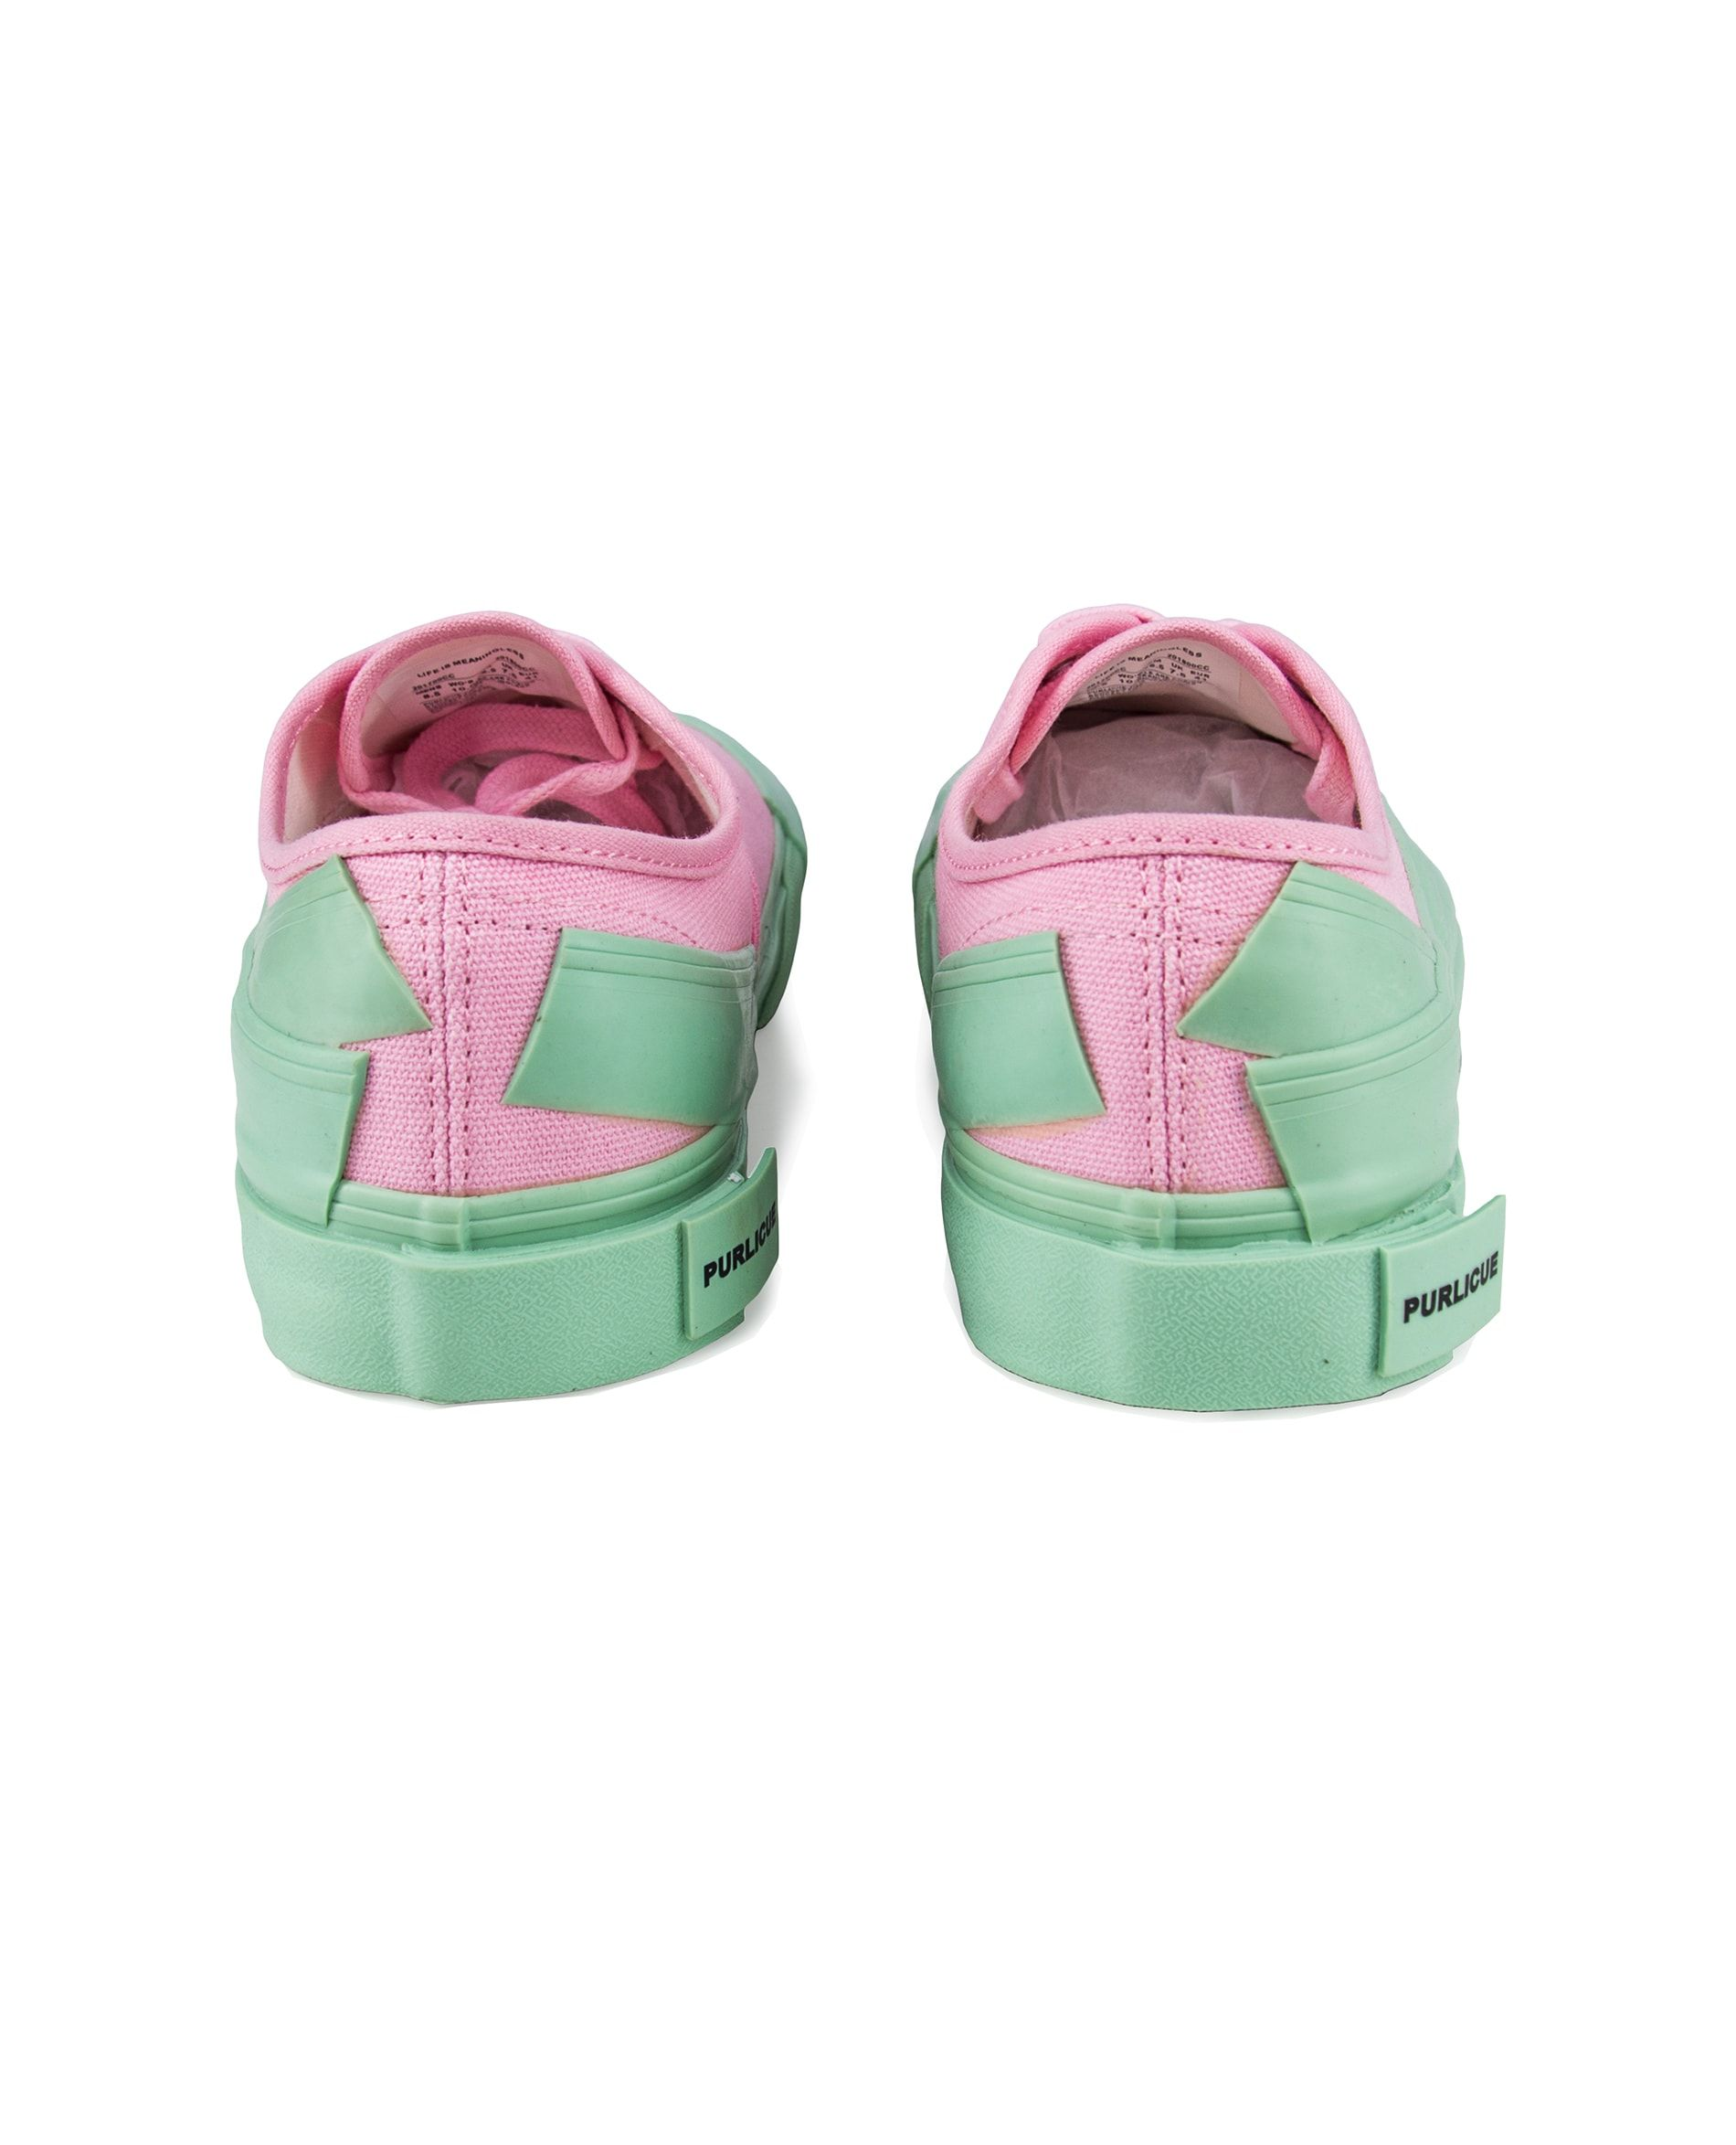 0e3d8300b258 PURLICUE -  Life is Meaningless  Pink Sneaker